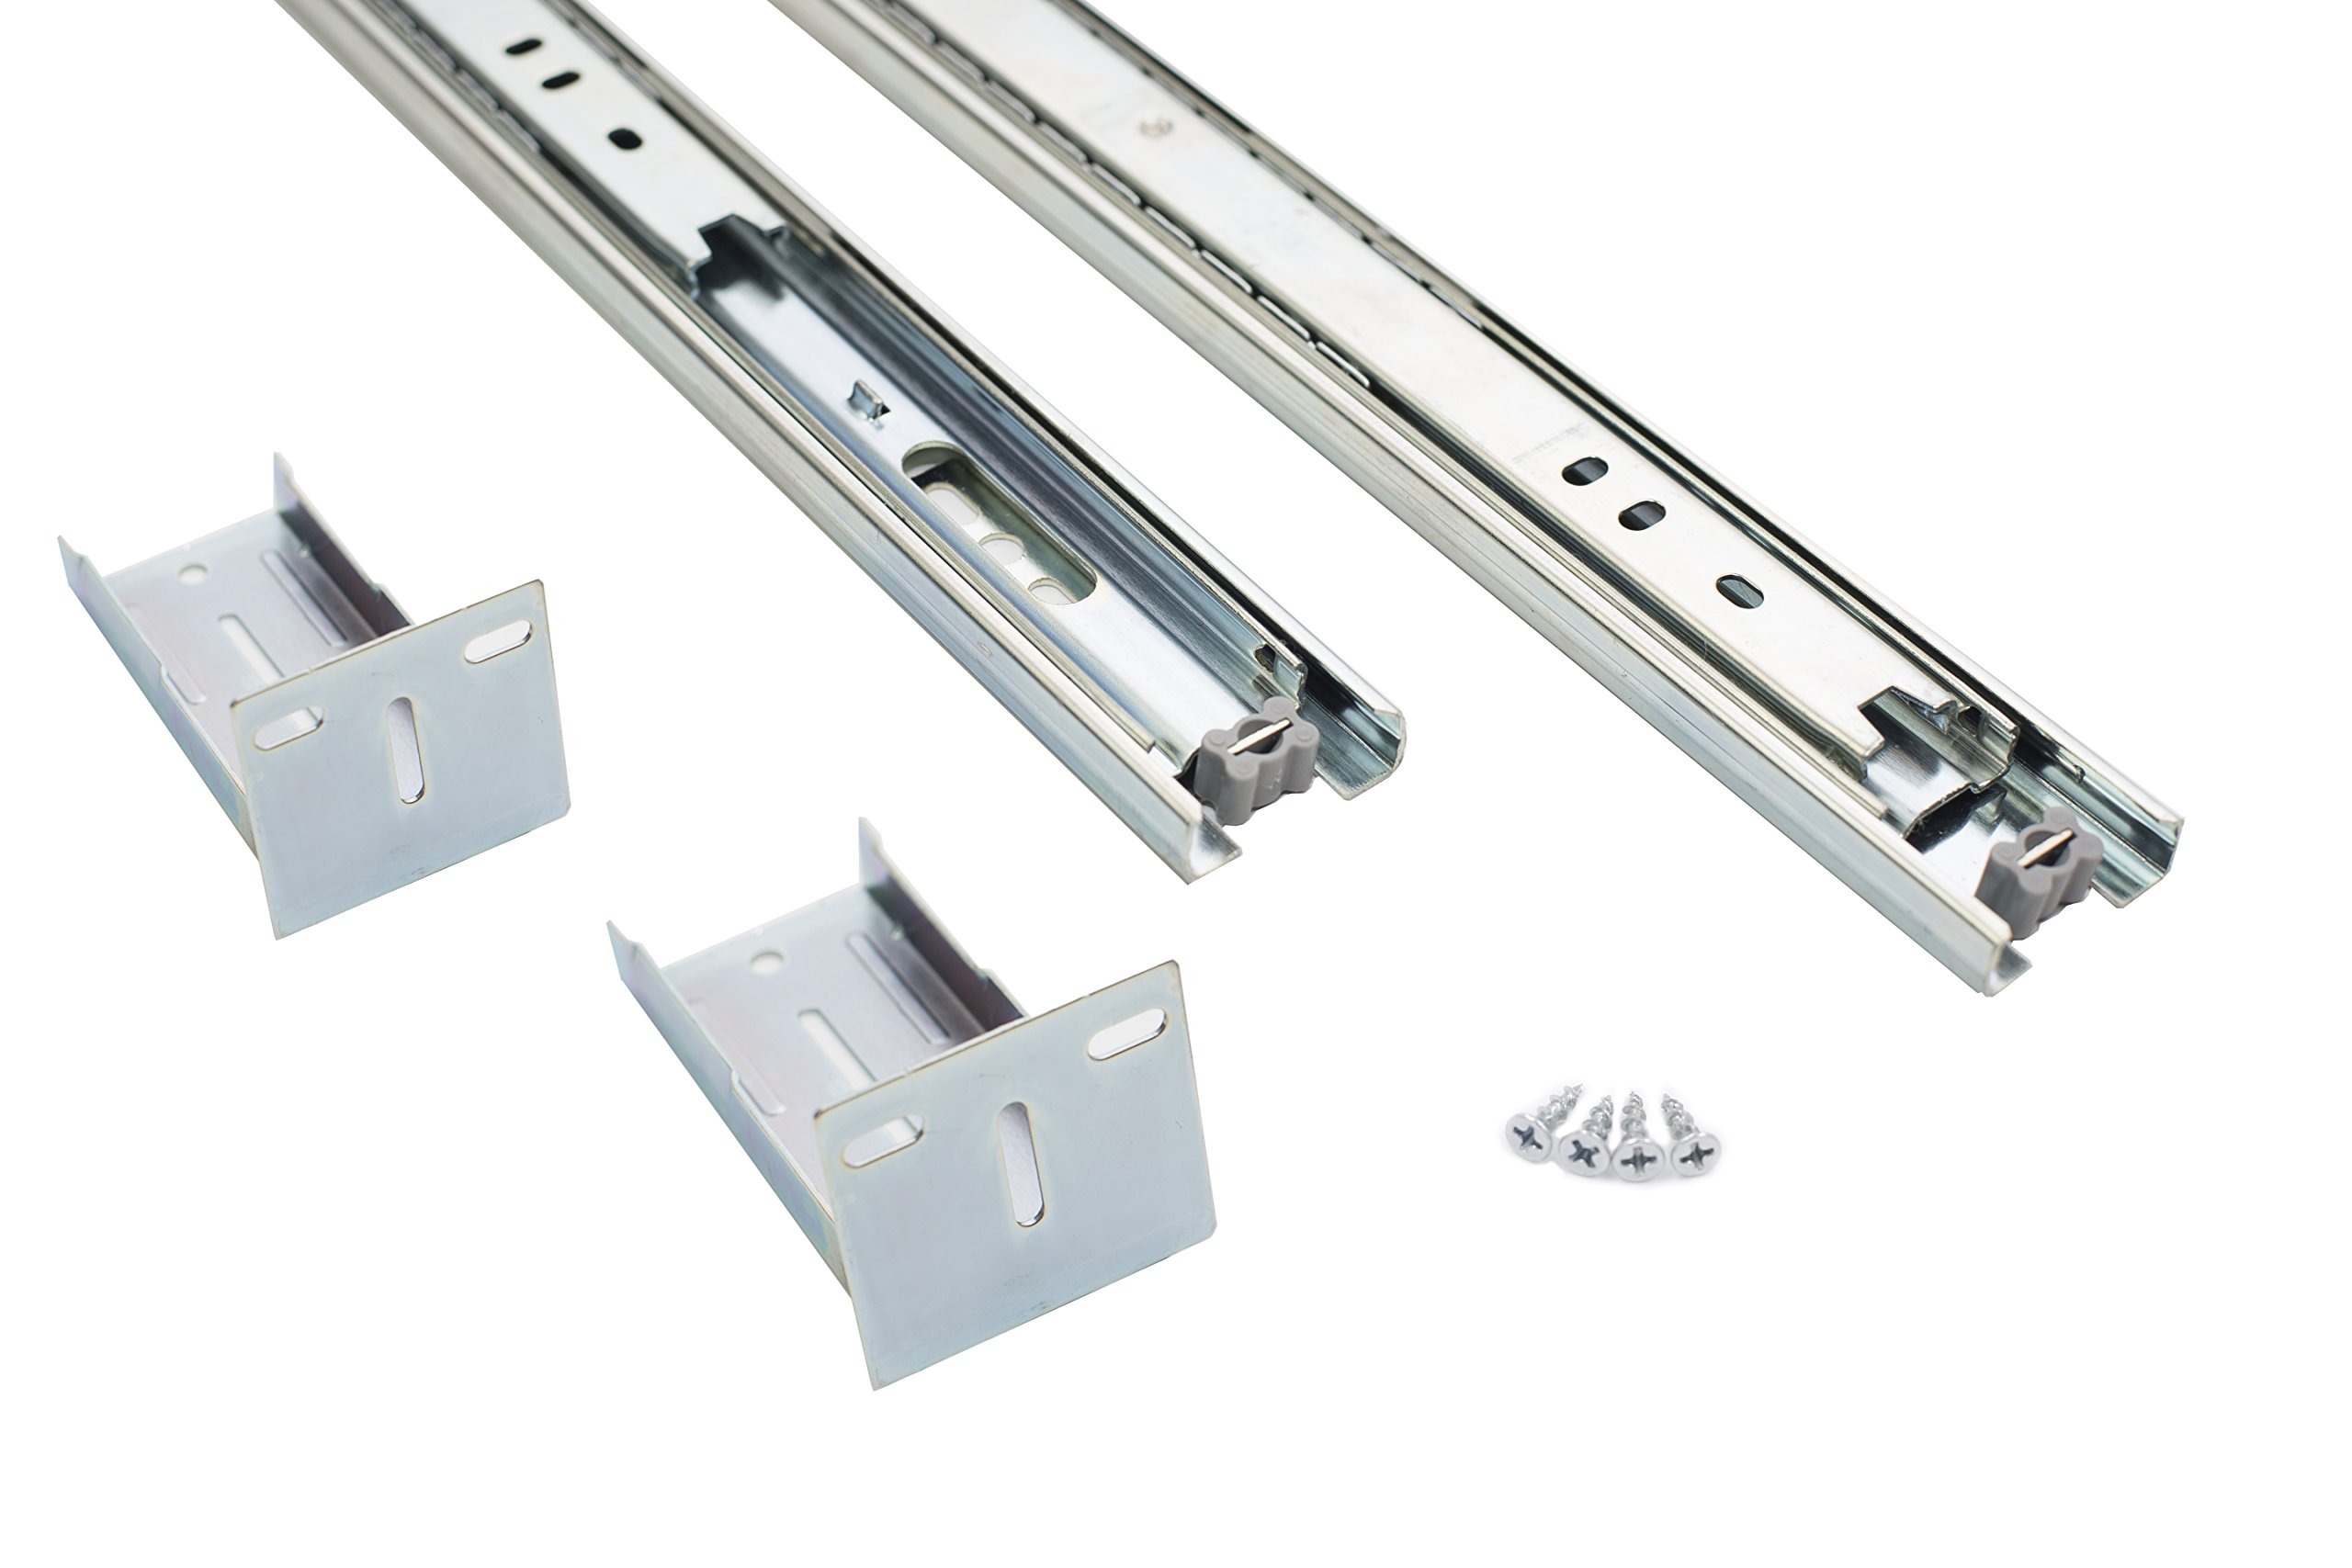 Comet Pro Hardware S3 22 Inch Full Extension Ball Bearing Slides 80 LB Capacity For Kitchen Cabinet Drawer, Rear Mount Bracket and Screws are Included (22 Inch 10 Pairs)